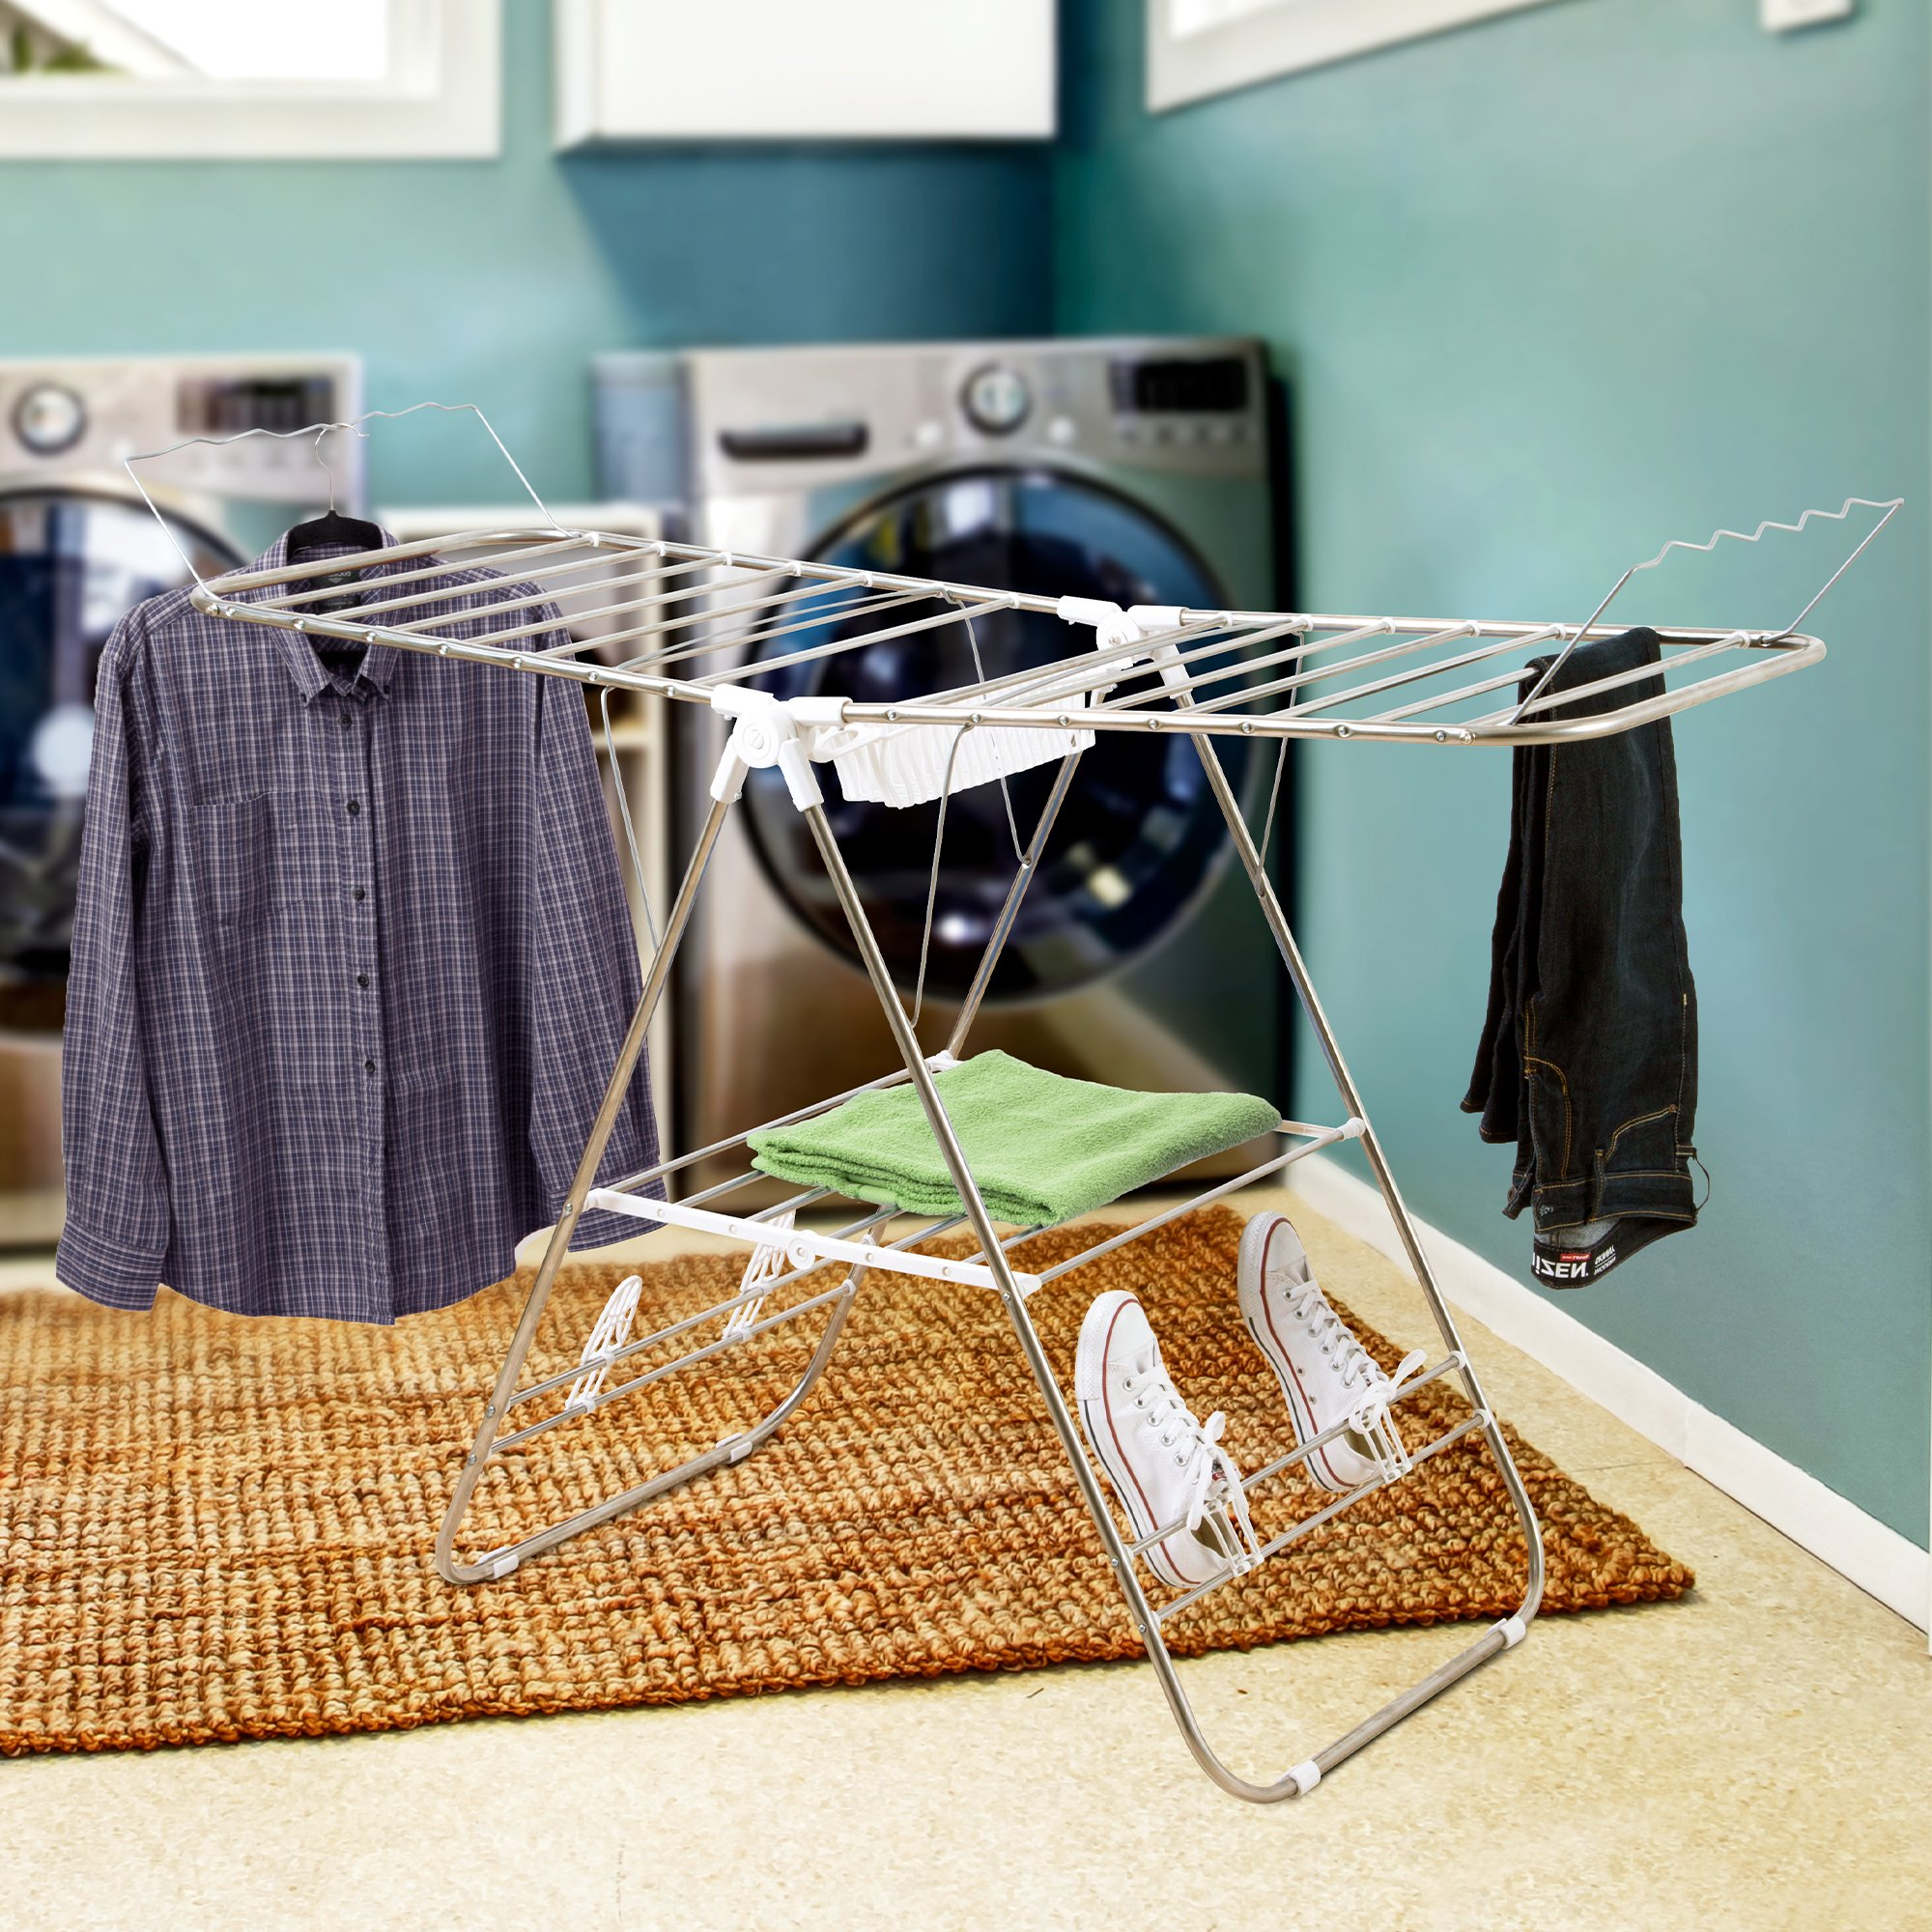 Everyday Home Heavy Duty Laundry Drying Rack- Chrome Steel Clothing Shelf for Indoor and Outdoor Use Best Used for Shirts Pants Towels Shoes